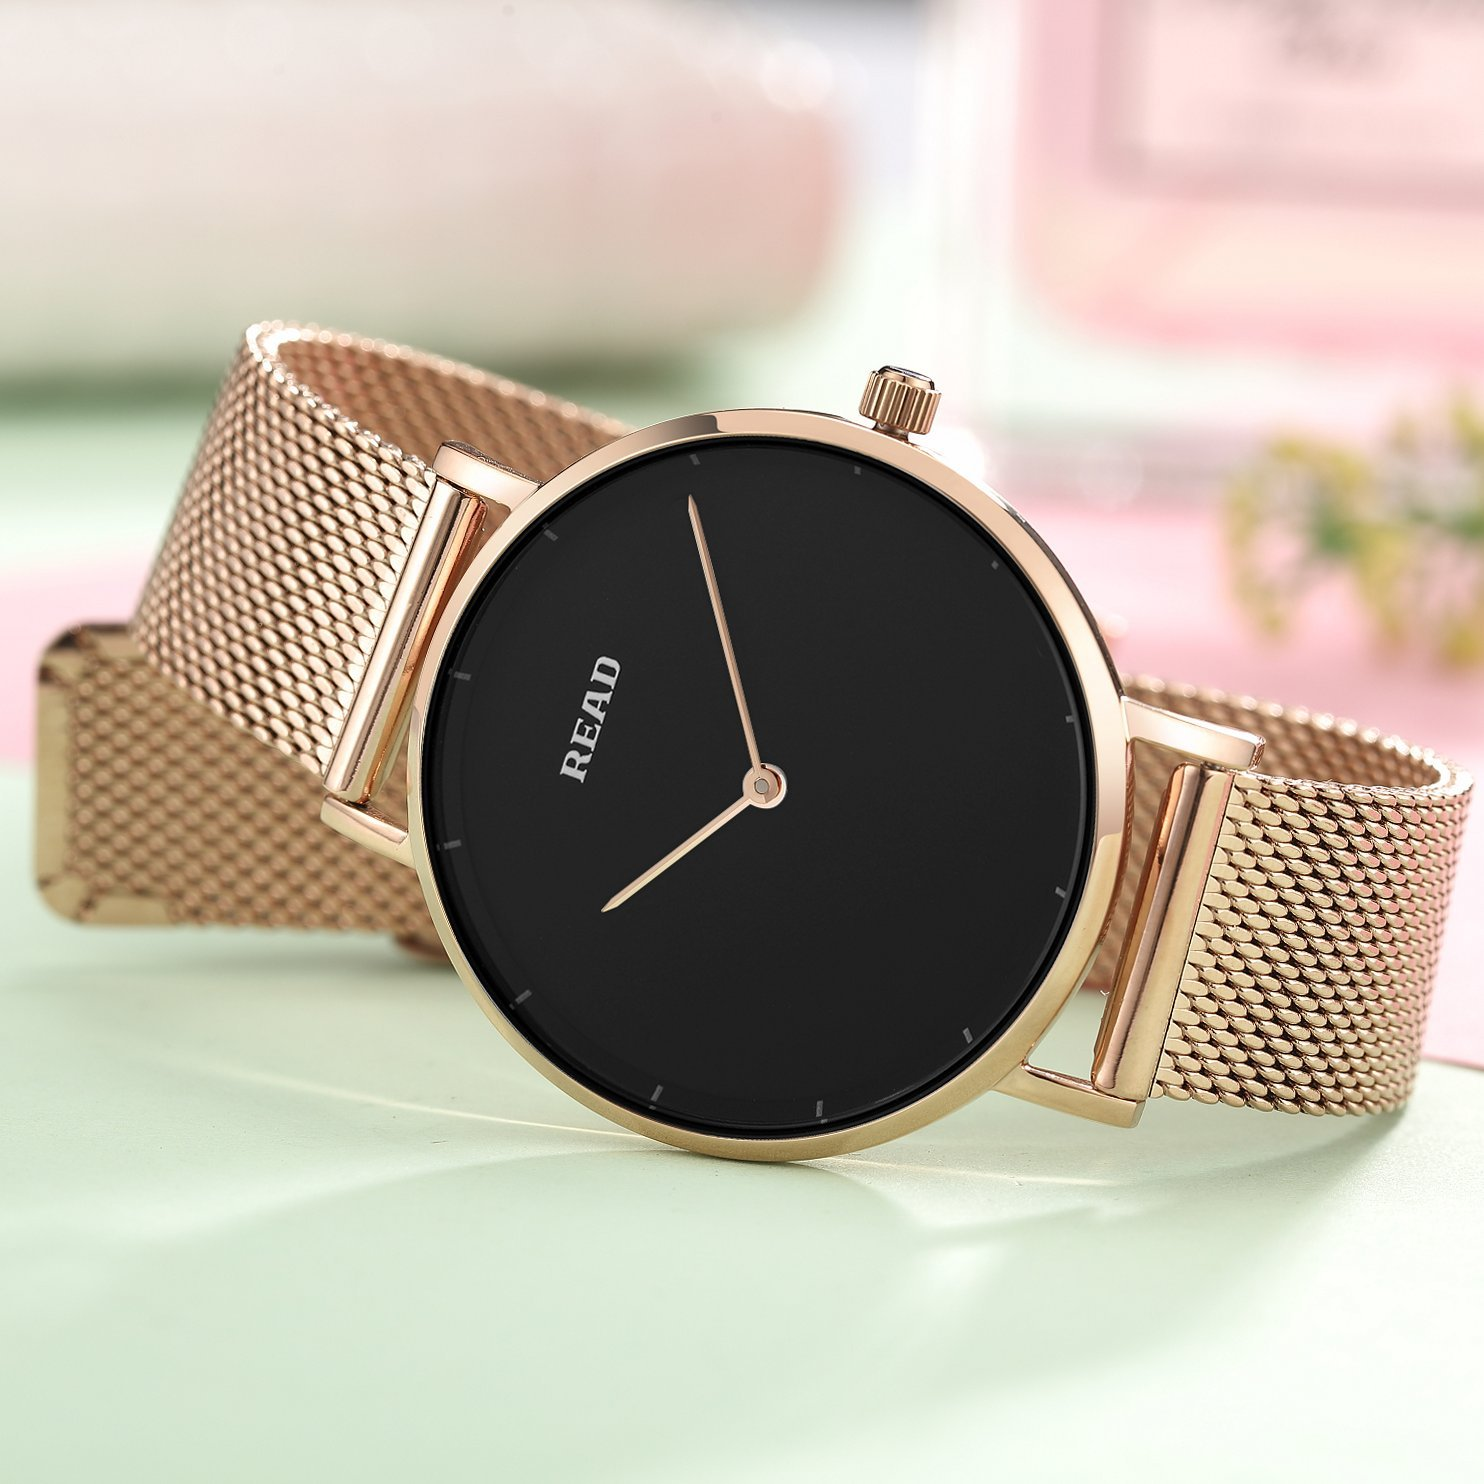 Amazon.com: New READ Women Quartz Watches with Mesh Steel Band Waterproof Wristwatch Best Valentines Day Gift for her R6005 (Rose Black): Watches